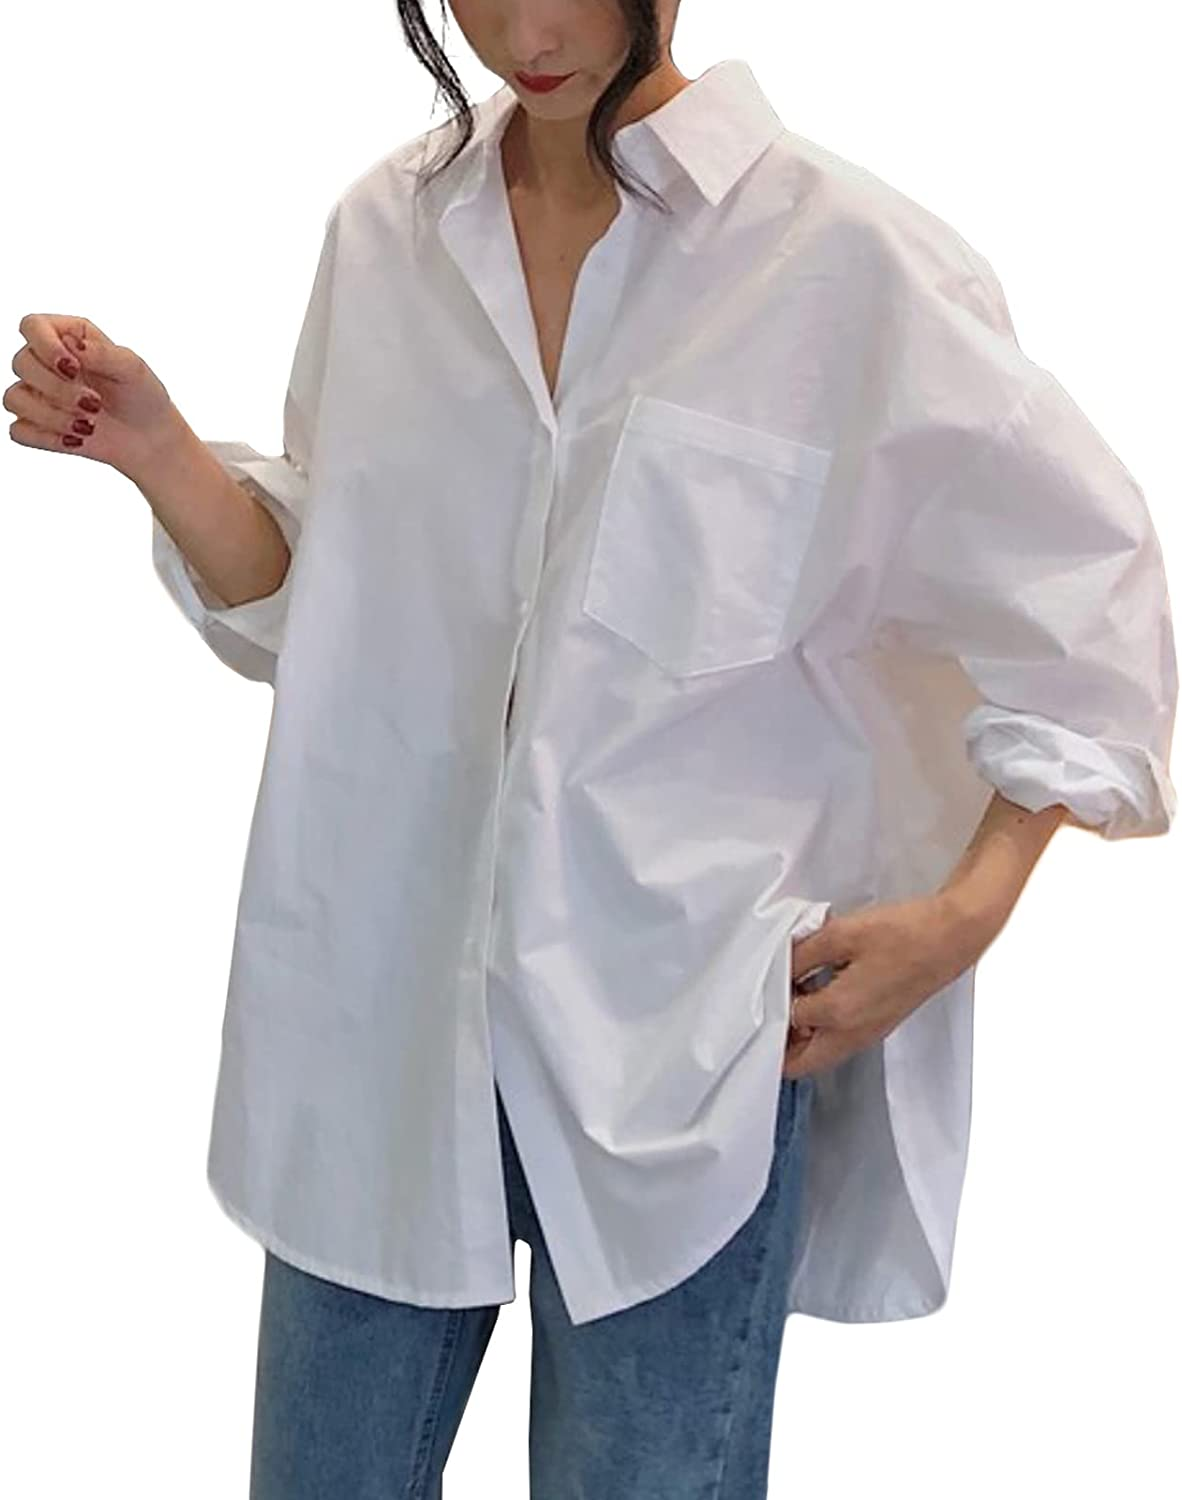 Womens Casual White Shirts Long Sleeve Loose Oversized Button Down Blouses Tops